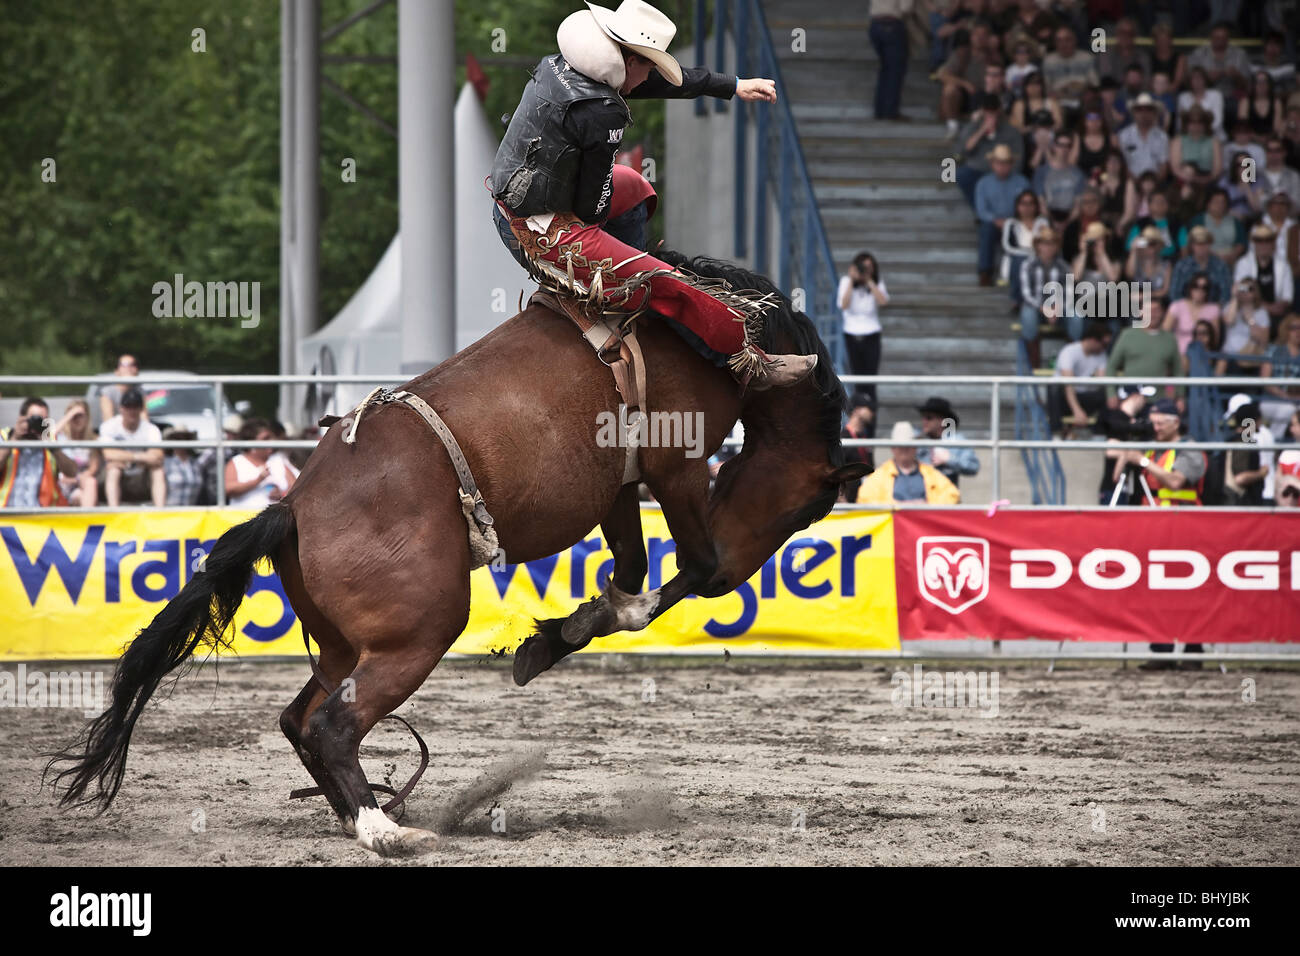 Cowboy riding a horses during Rodeo - Stock Image